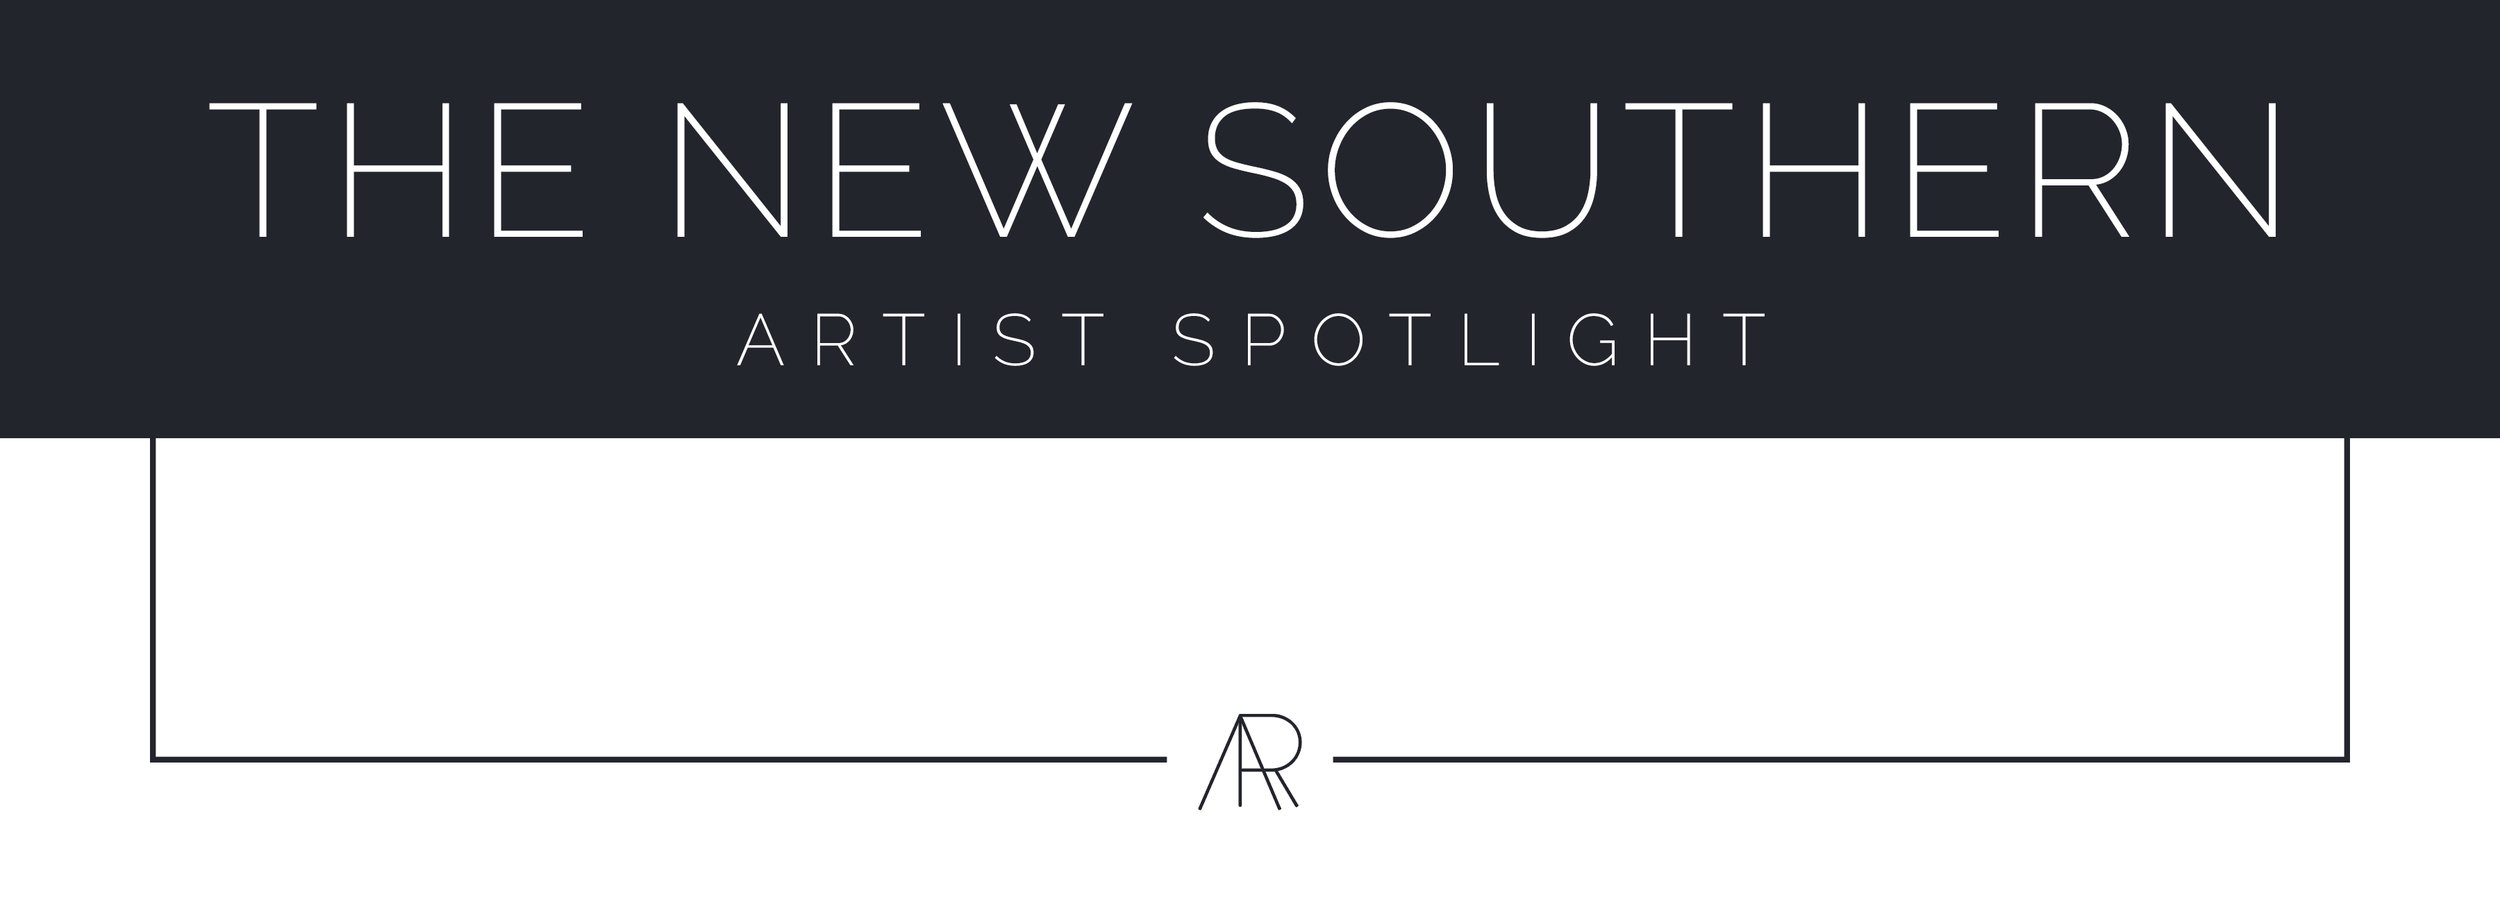 Alyssa Rosenheck's The New Southern Artist Spotlight with Hillary Butler, Abstract Fine Art Painter of Memphis, TN